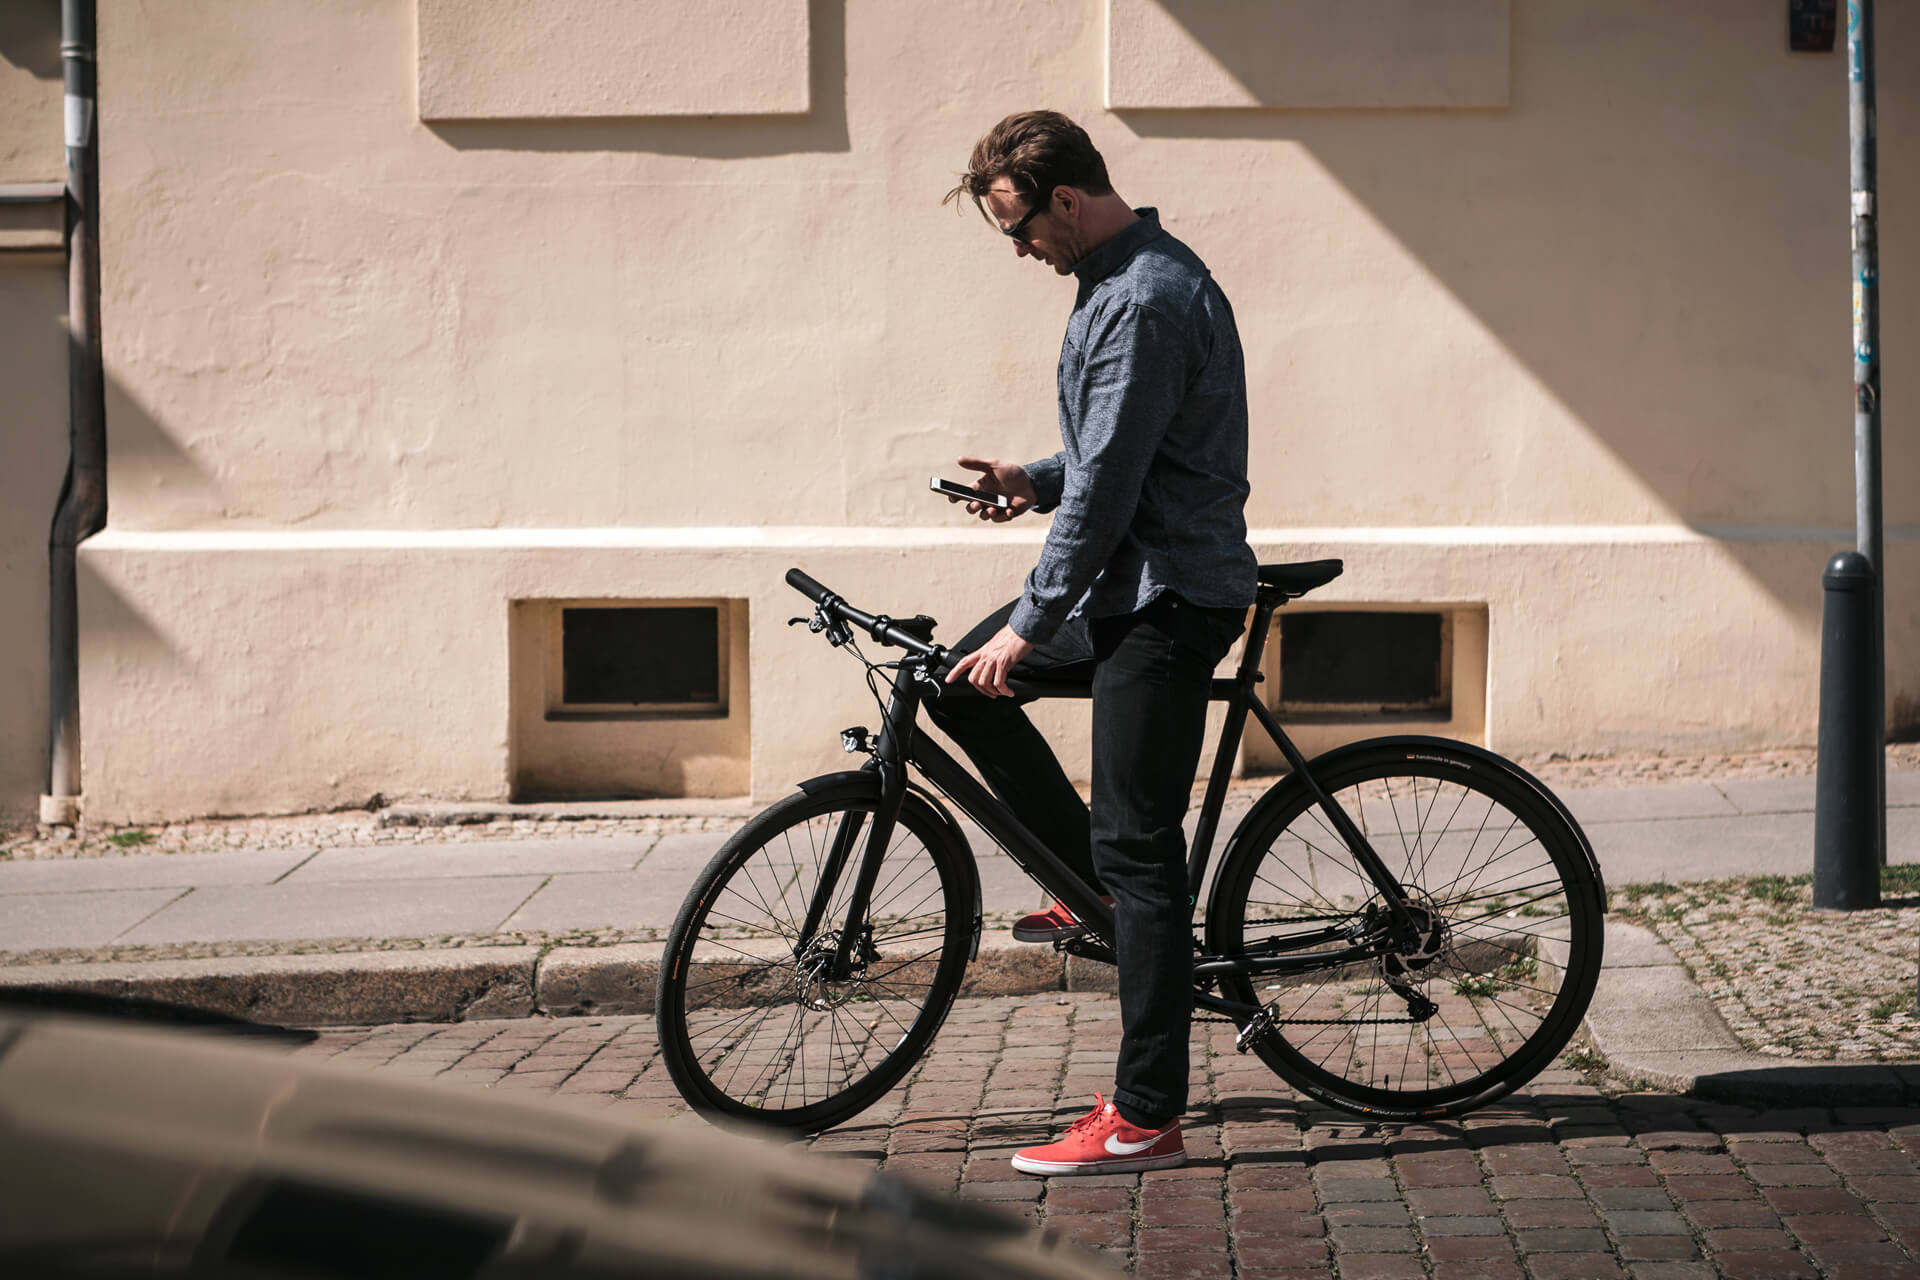 ampler rider unsing his smartphone